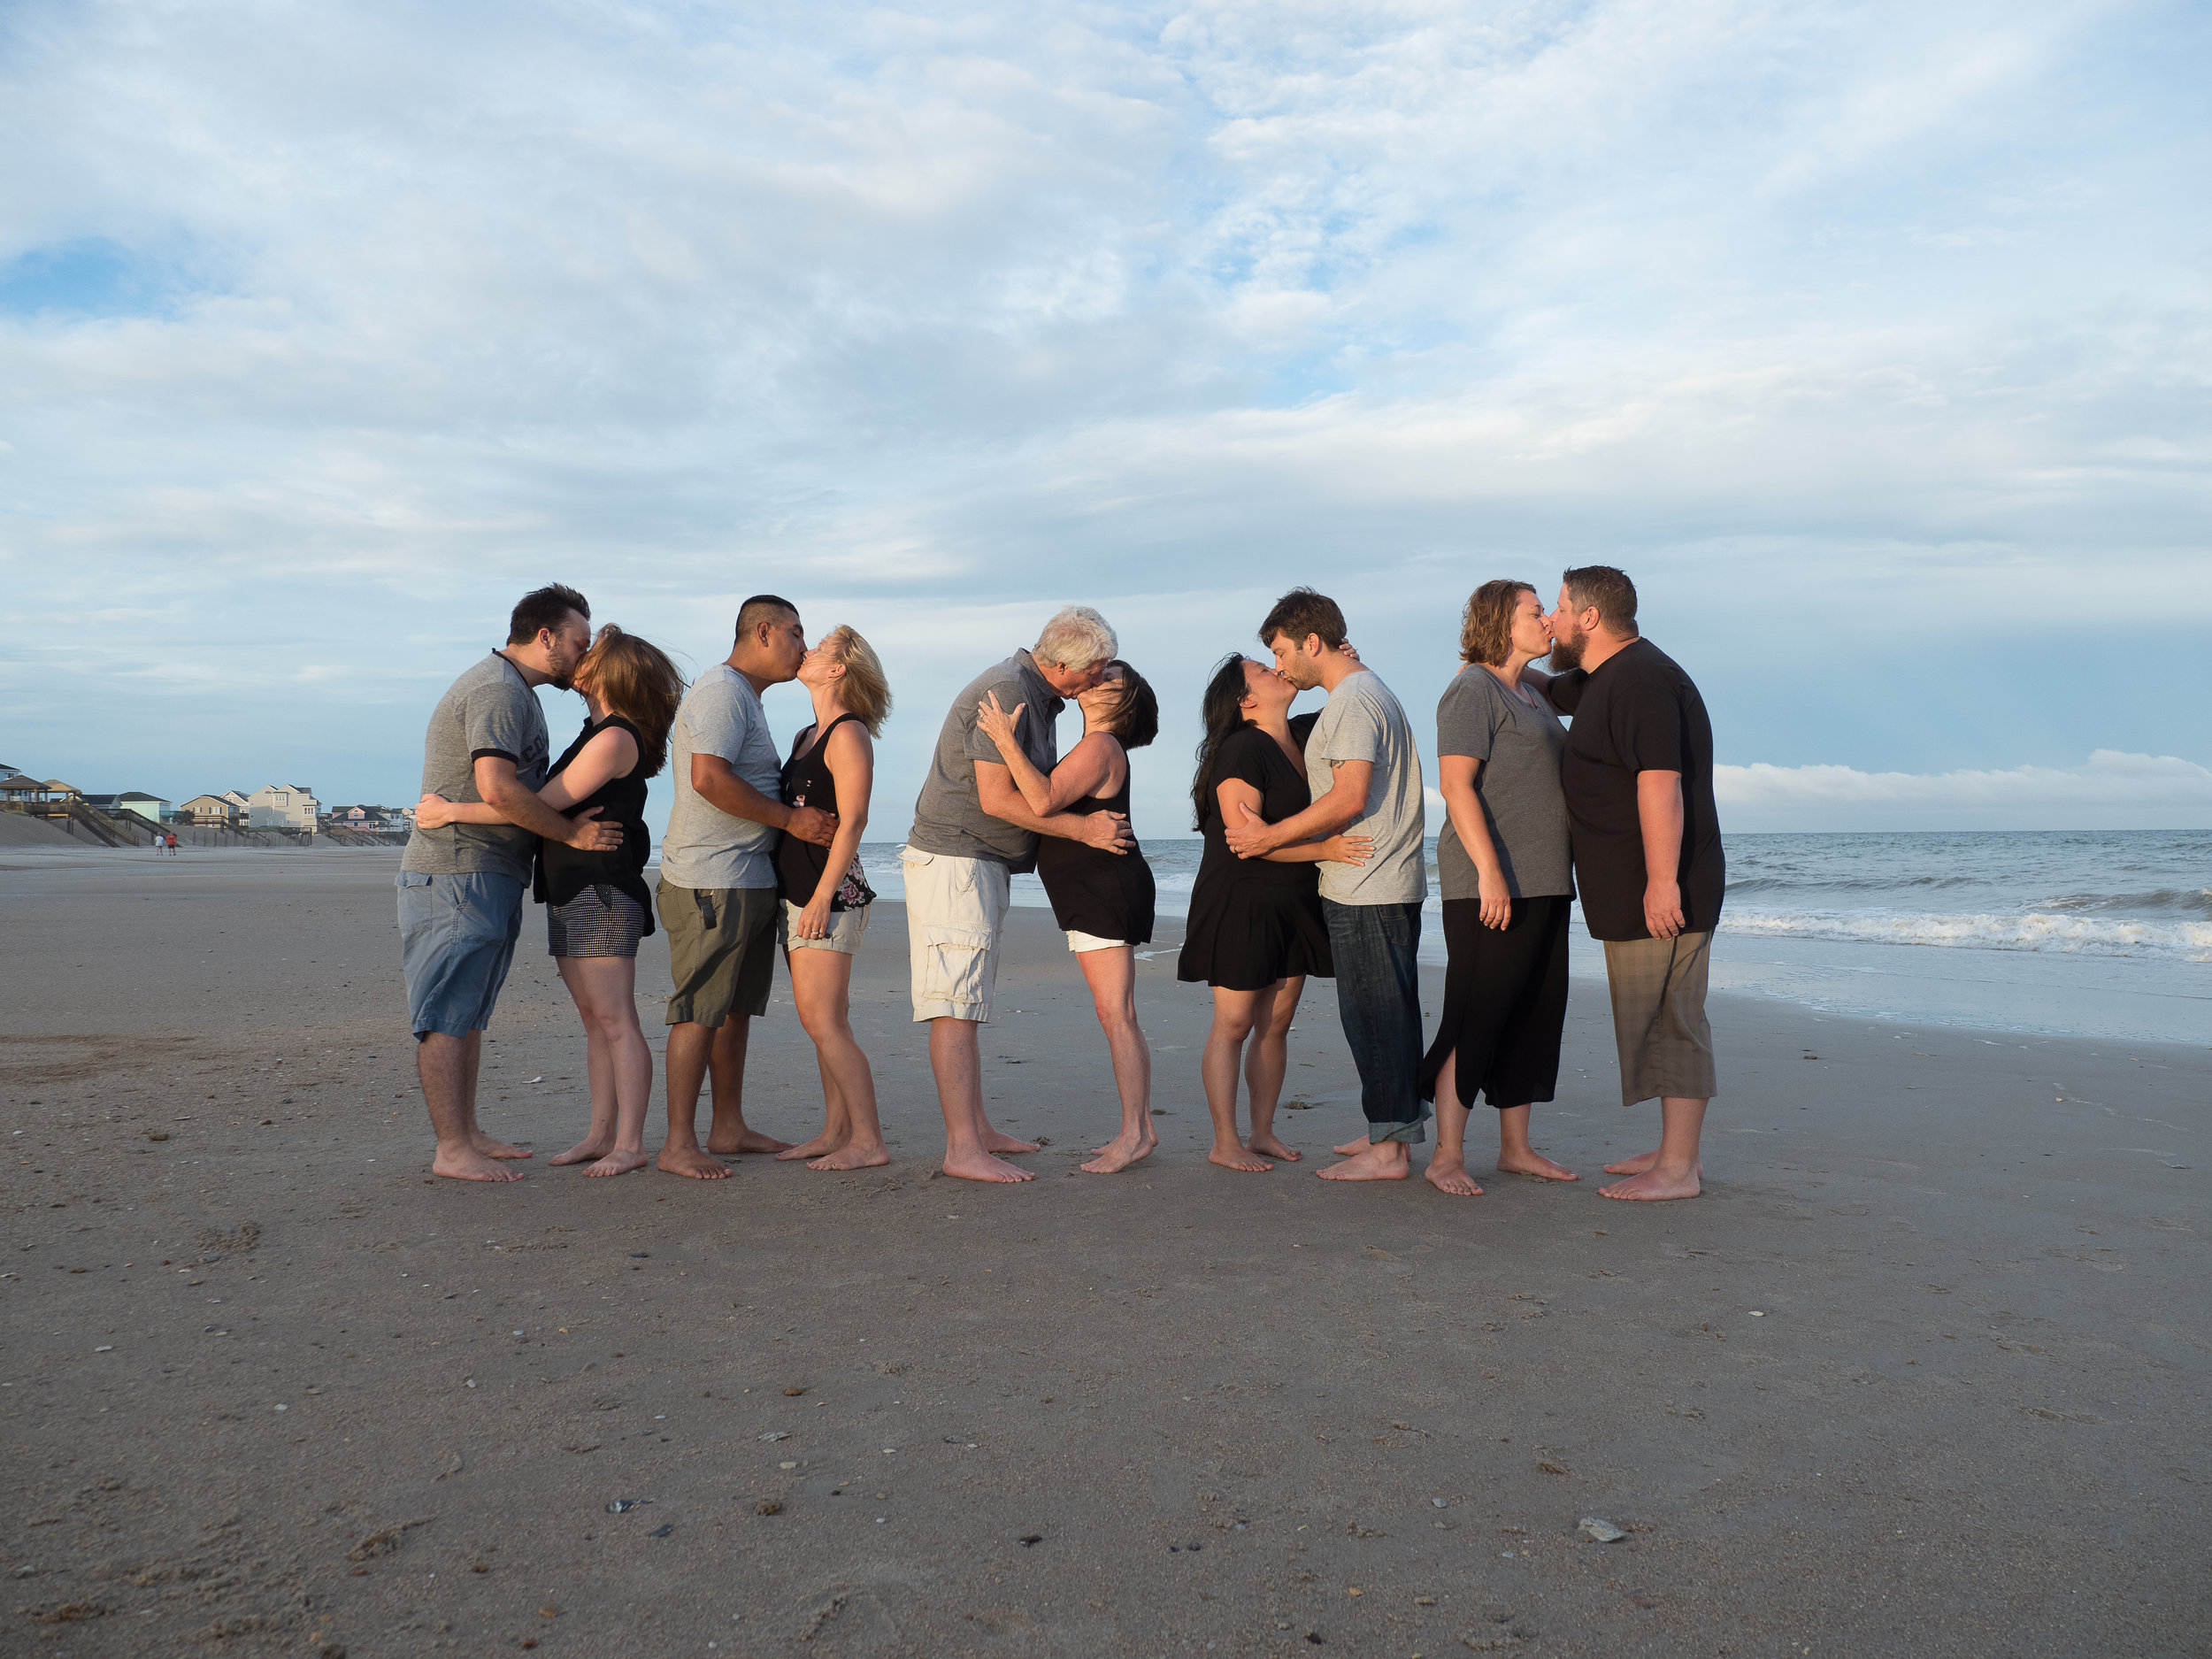 - Group Kiss. Got all the married folks during the session for a kiss shot. Fun session. Billy Beach Photography.